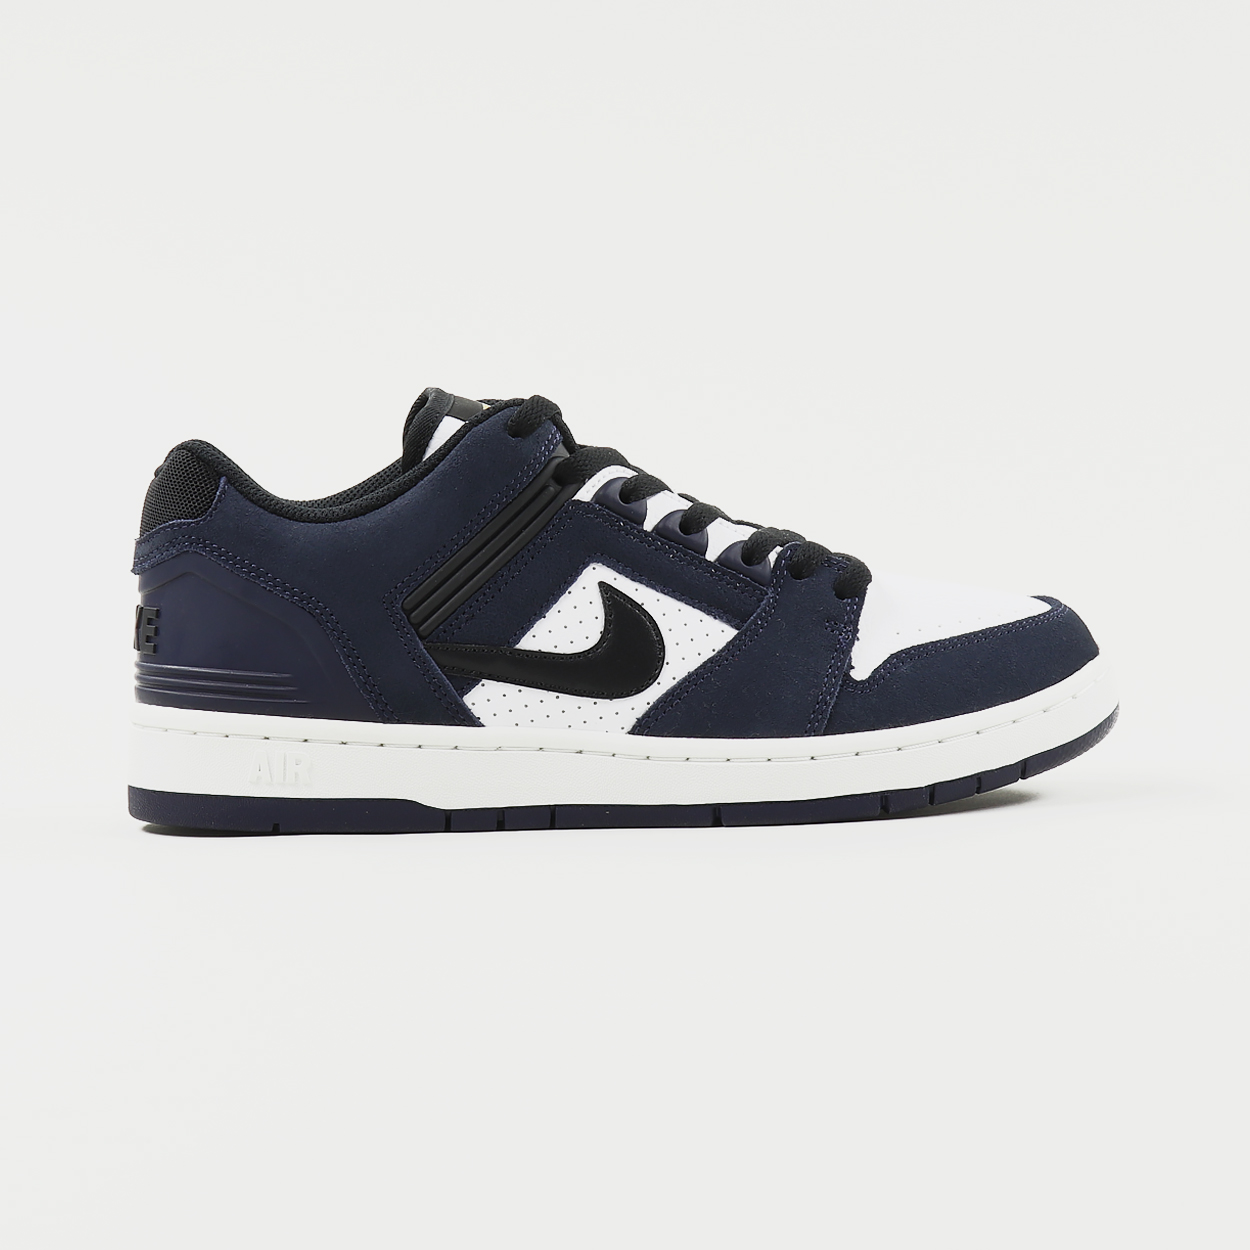 Nike SB Air Force II Low Shoes Obsidian Black White